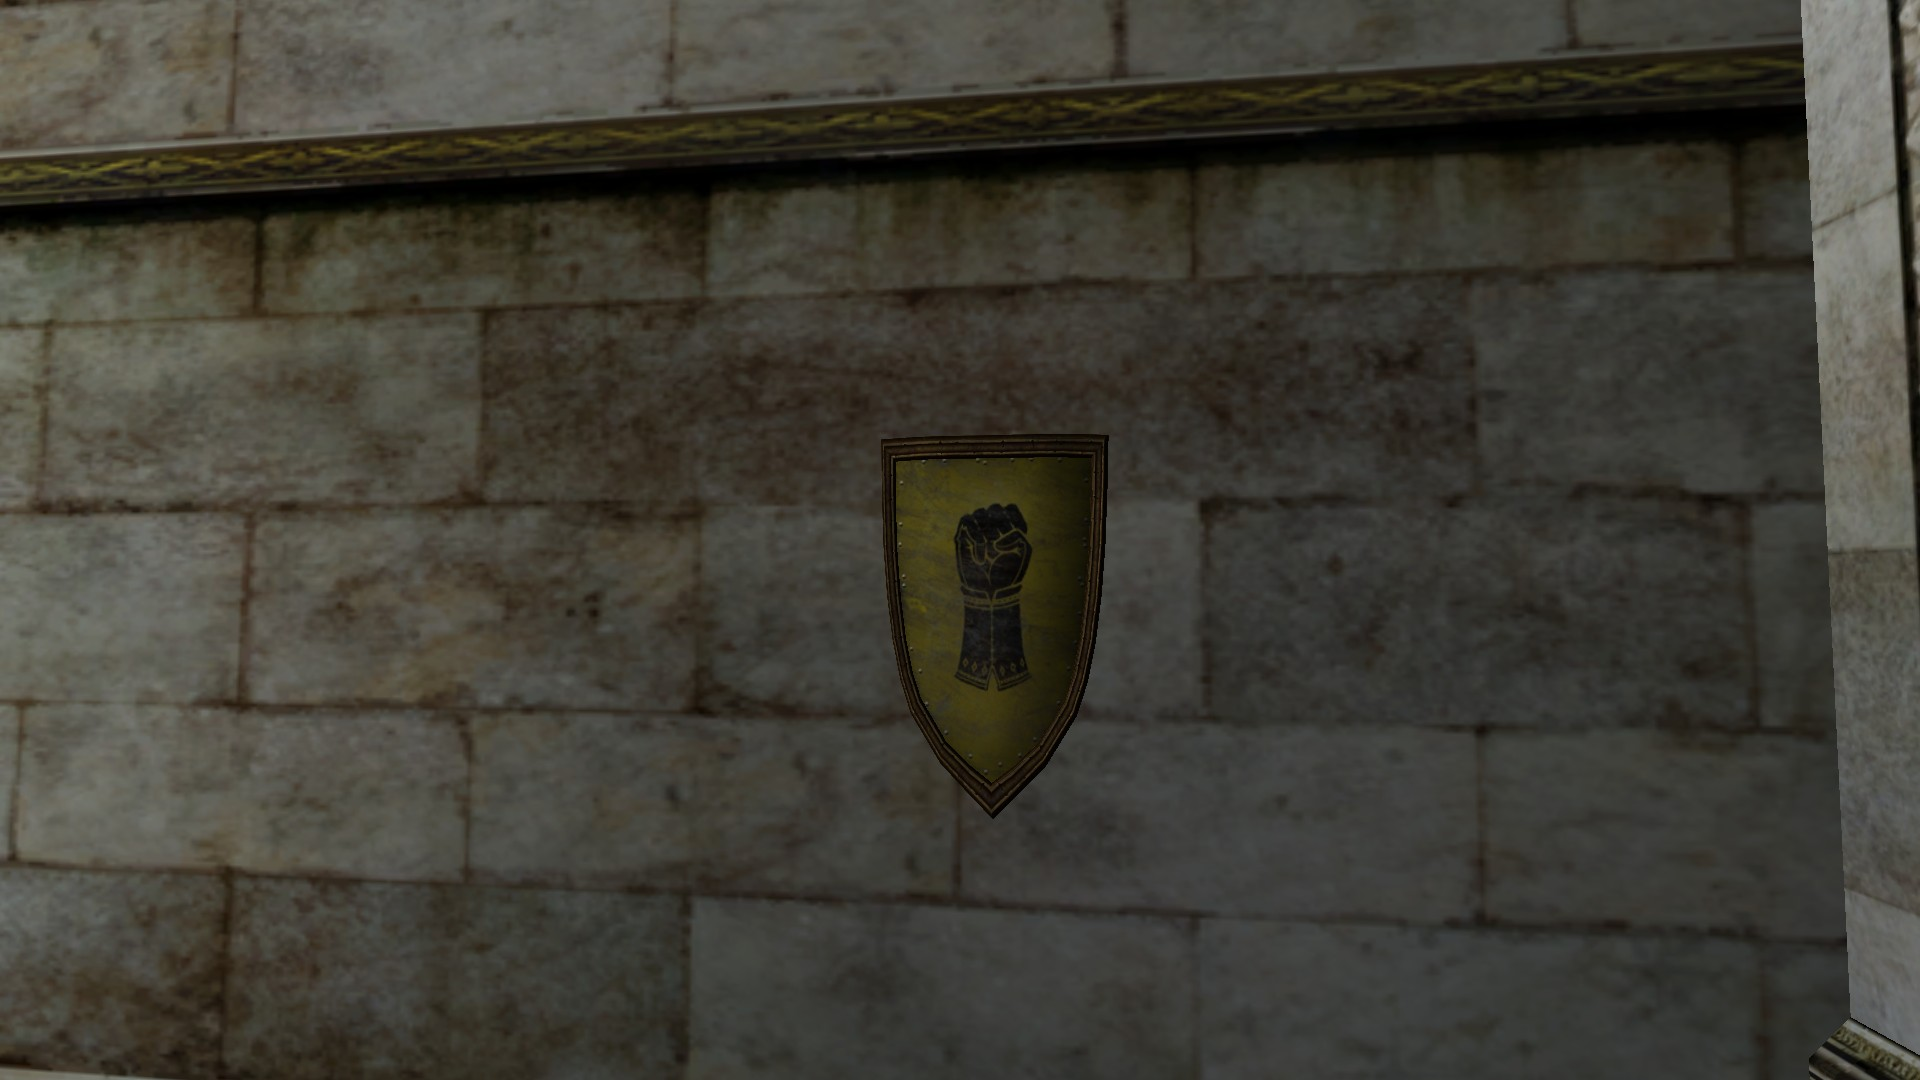 Shield of Lamedon